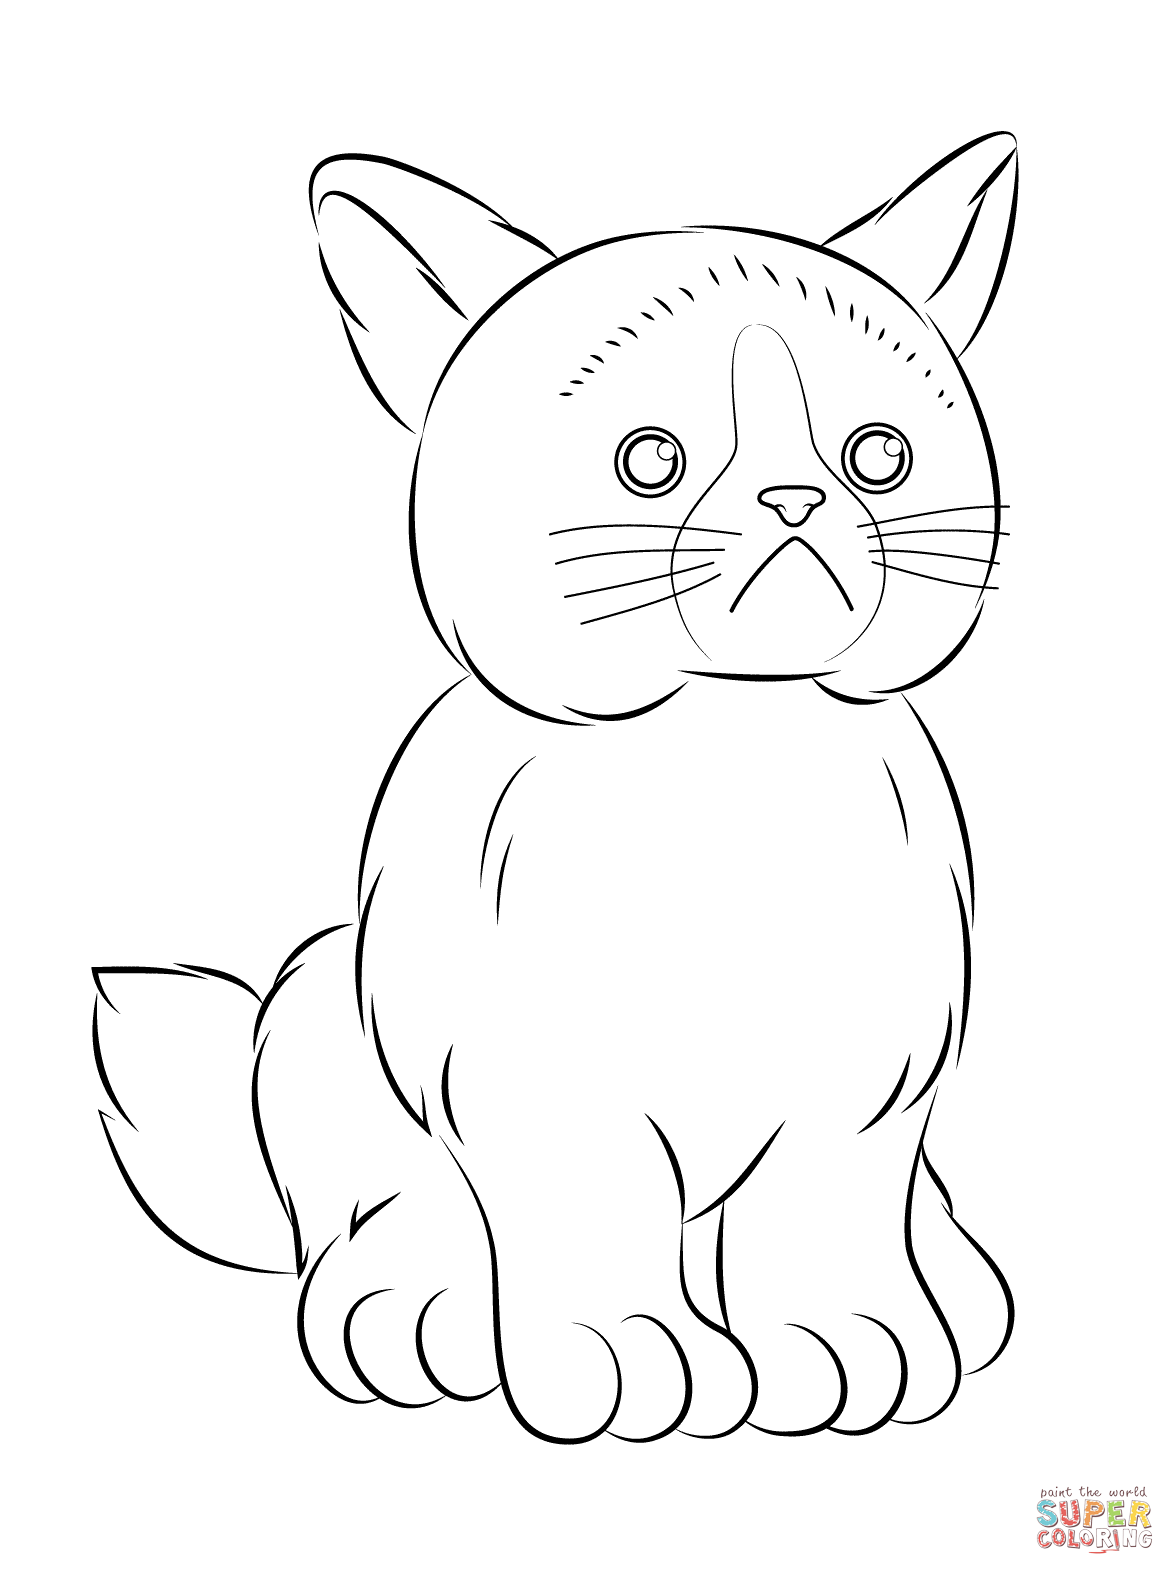 Webkinz Printable Coloring Pages